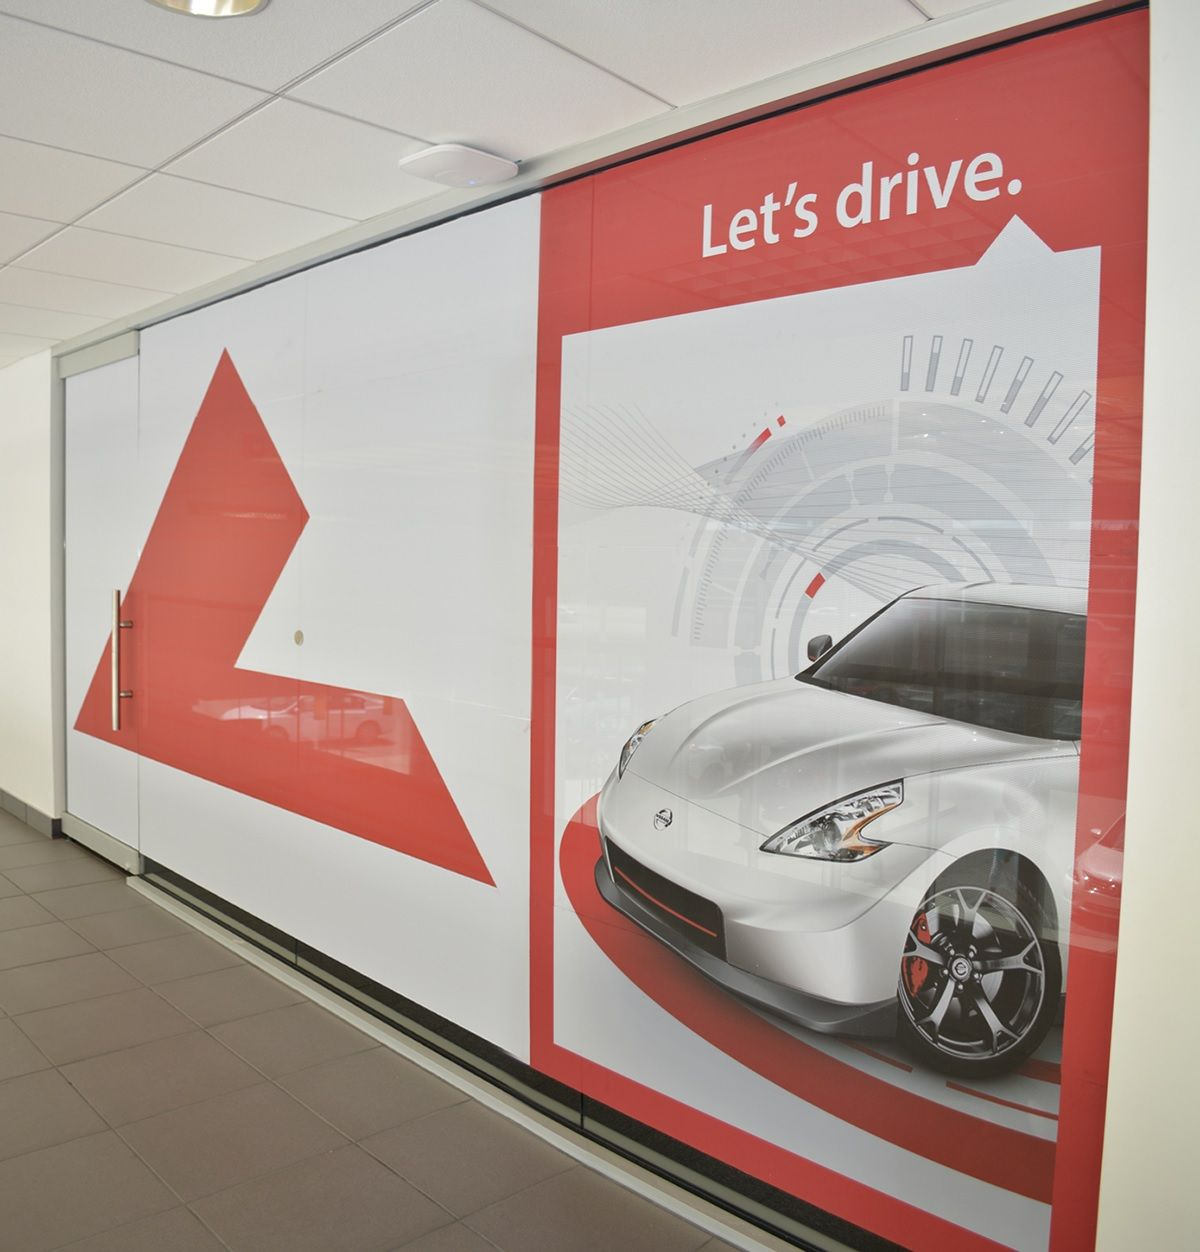 Valuable Identity And Conference Room Privacy For Legacy Nissan In London,  Ky. Using LexJet